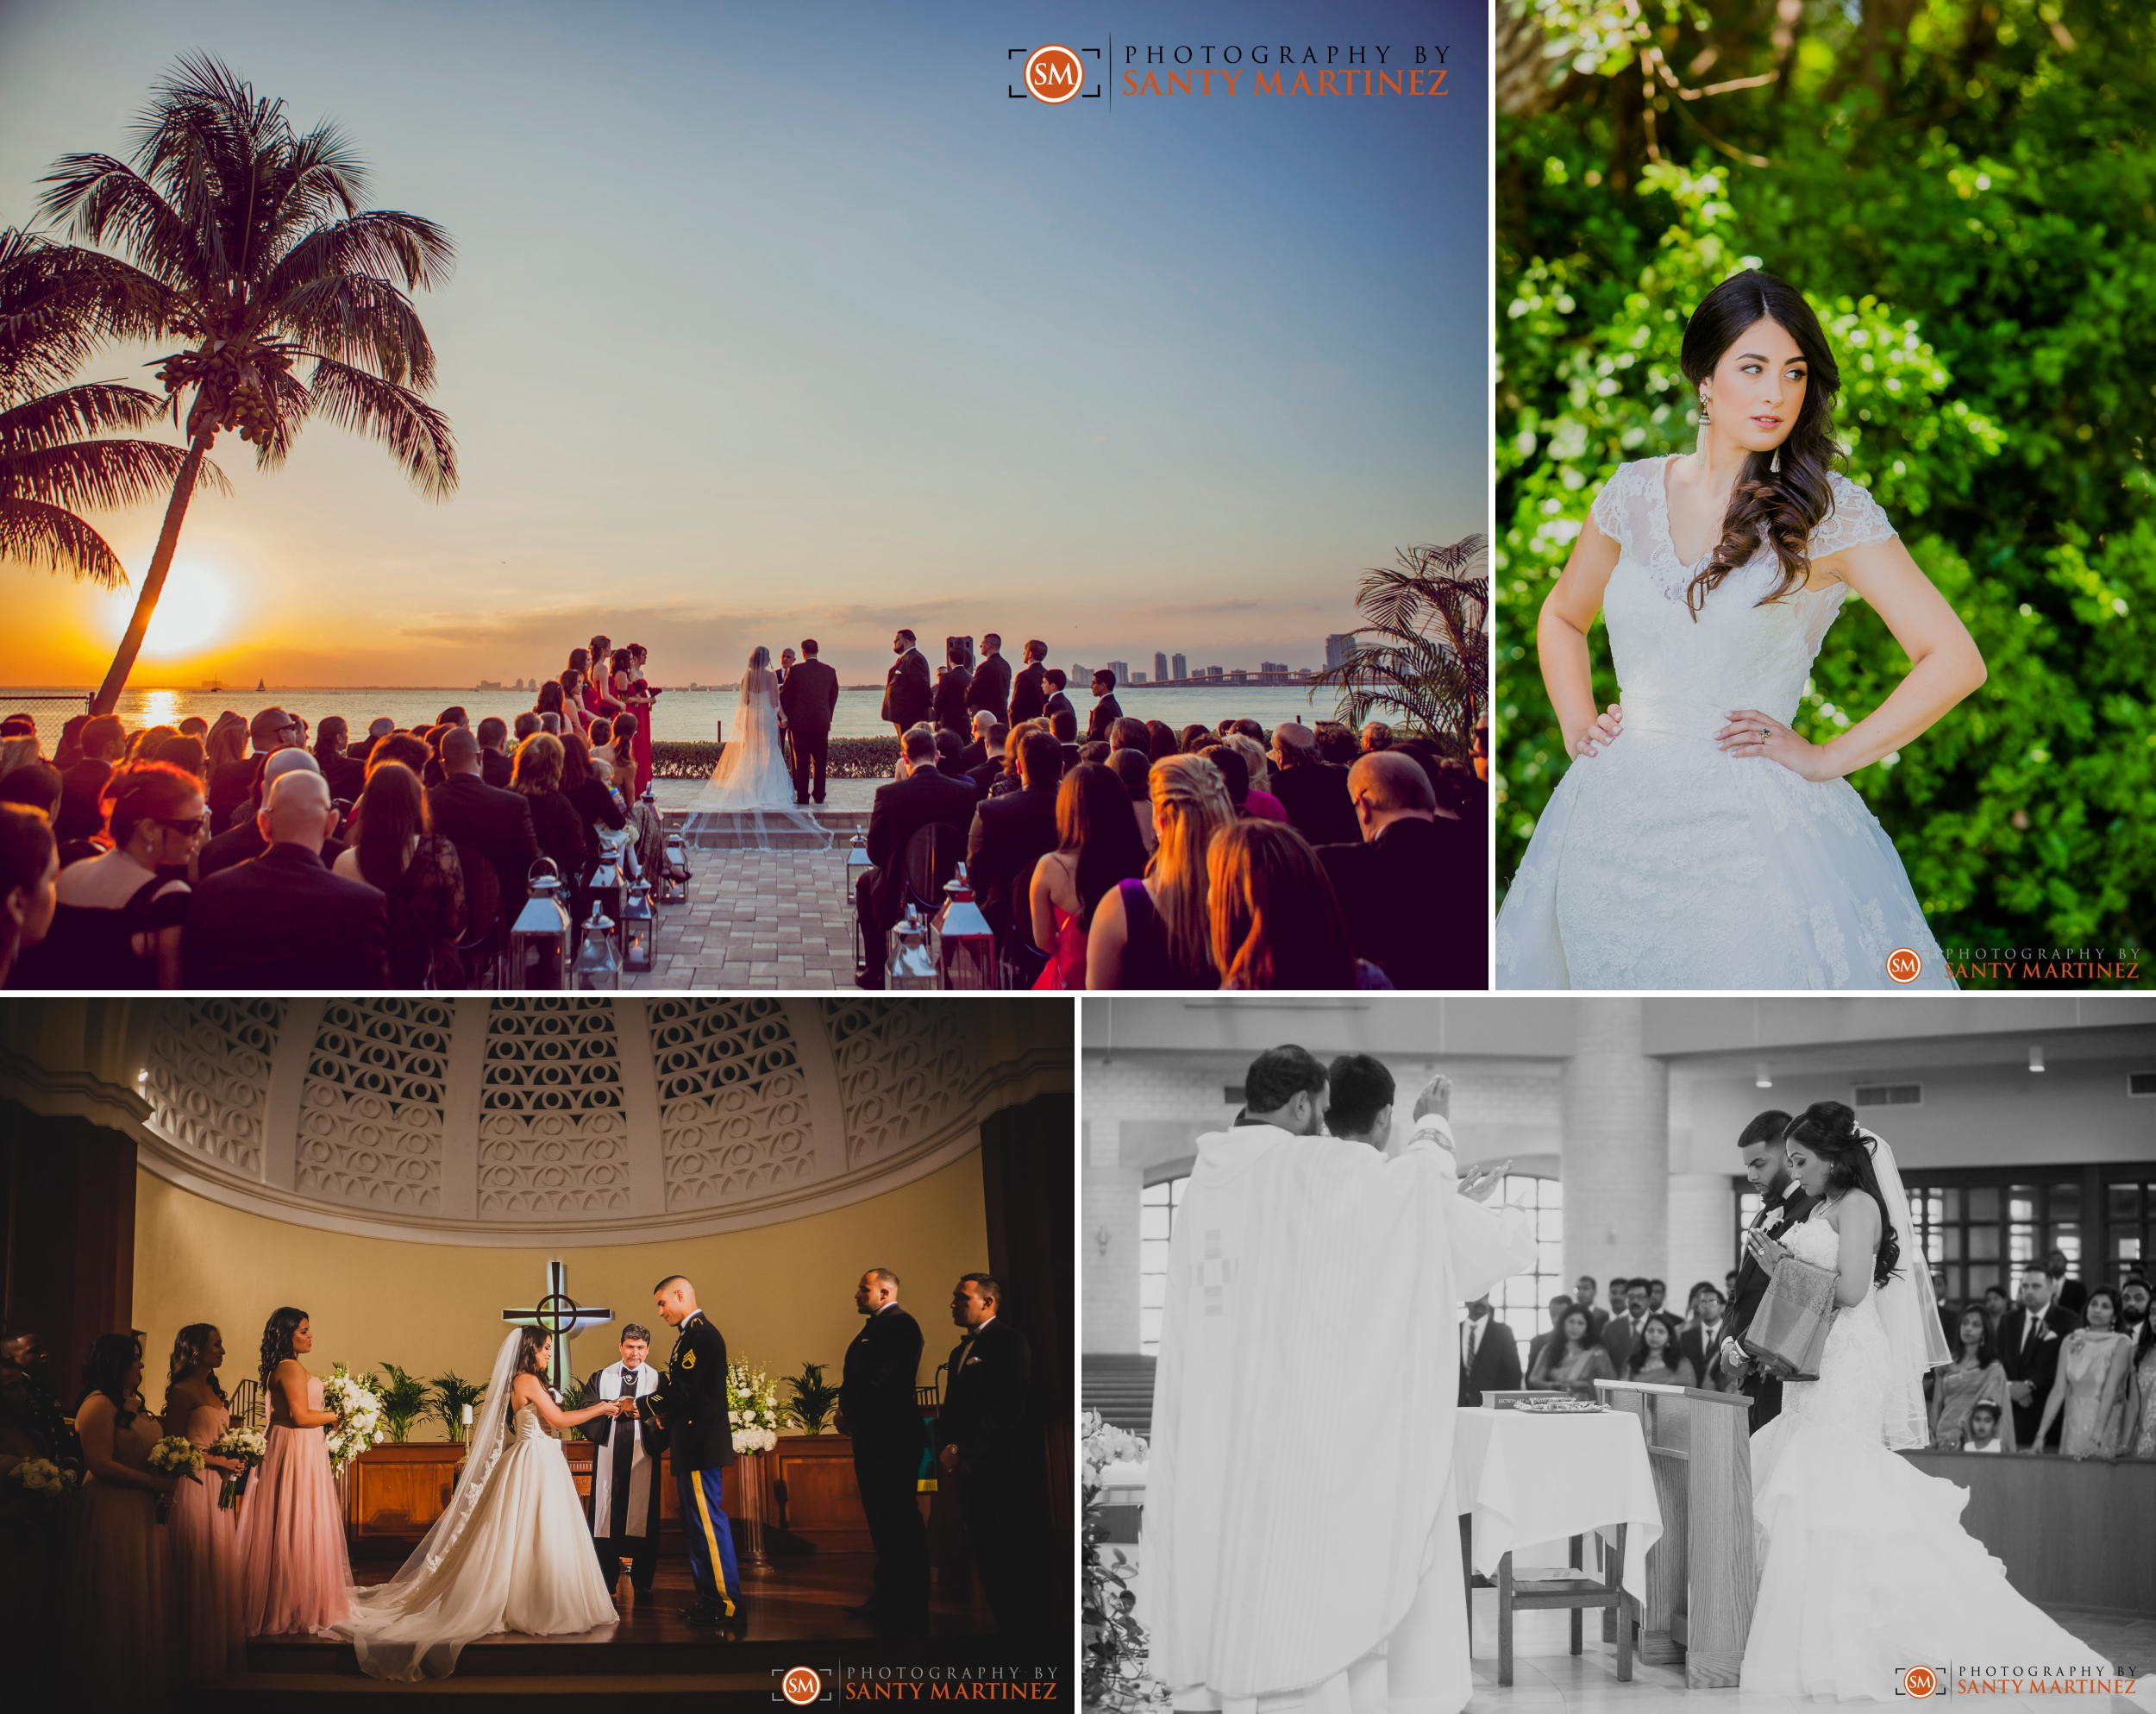 Santy Martinez - Photography - Miami Wedding Photographers 7.jpg